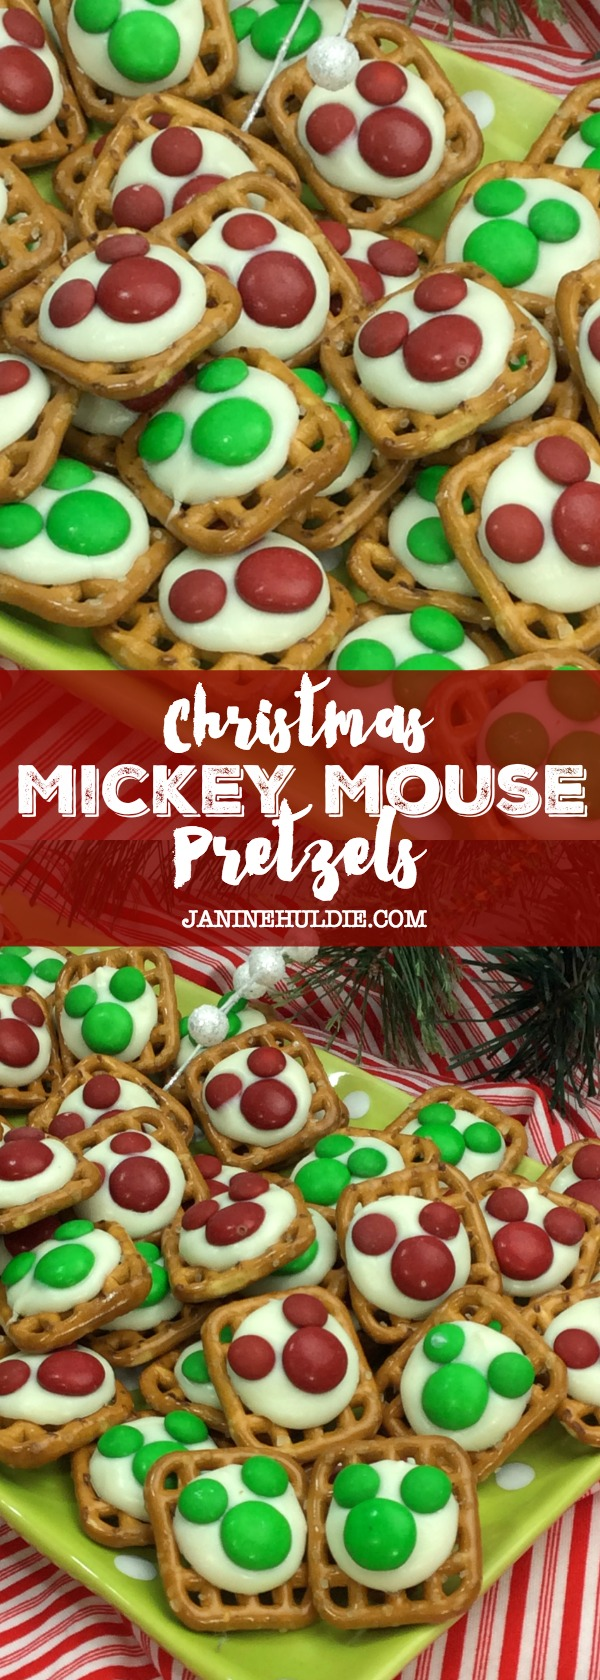 Christmas Mickey Mouse Pretzels